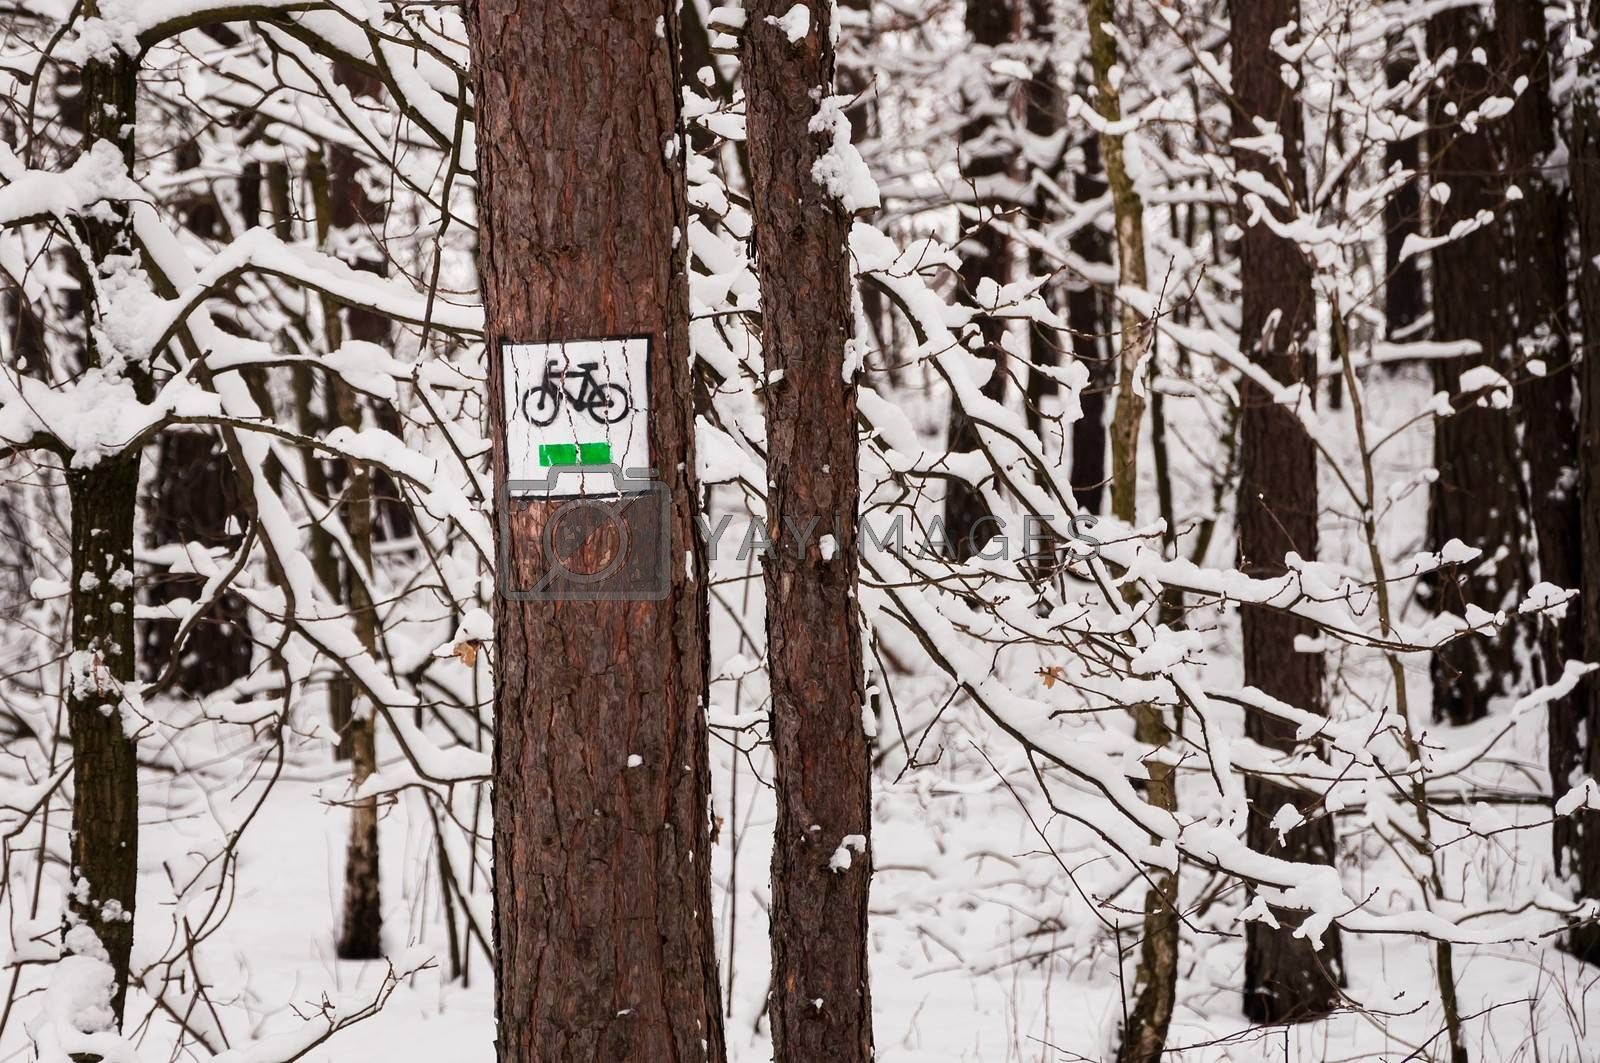 Bike route sign on the tree in winter.